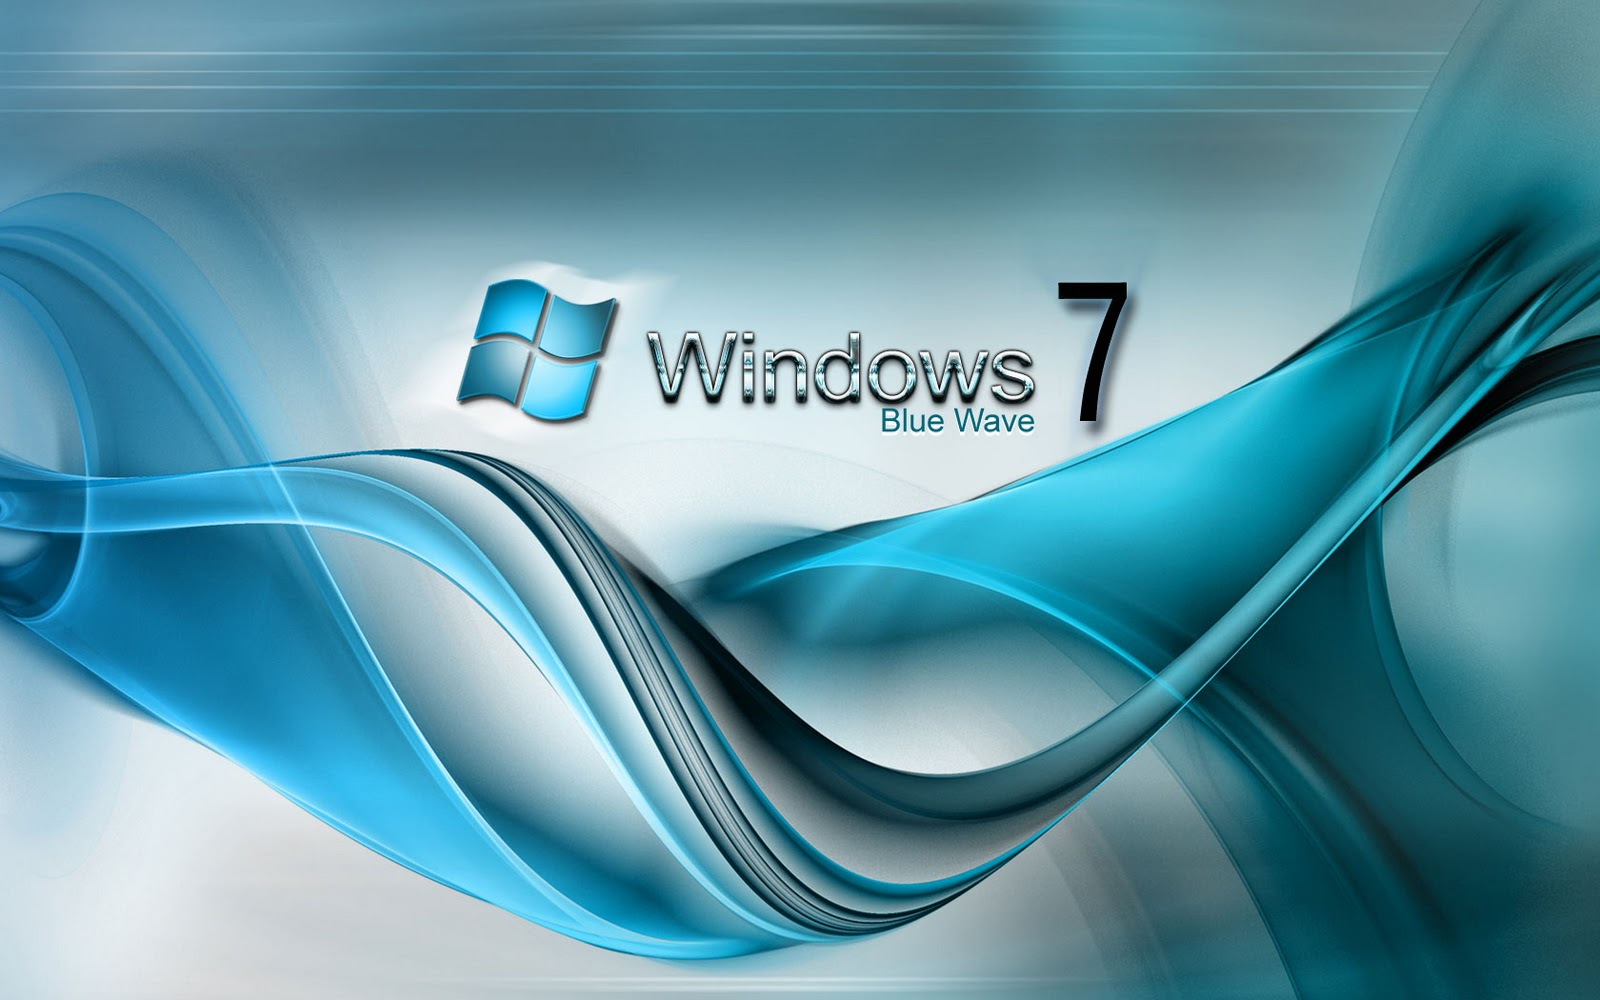 Free Download Windows 7 Blue Wave Wallpapers | Wallpapers Area